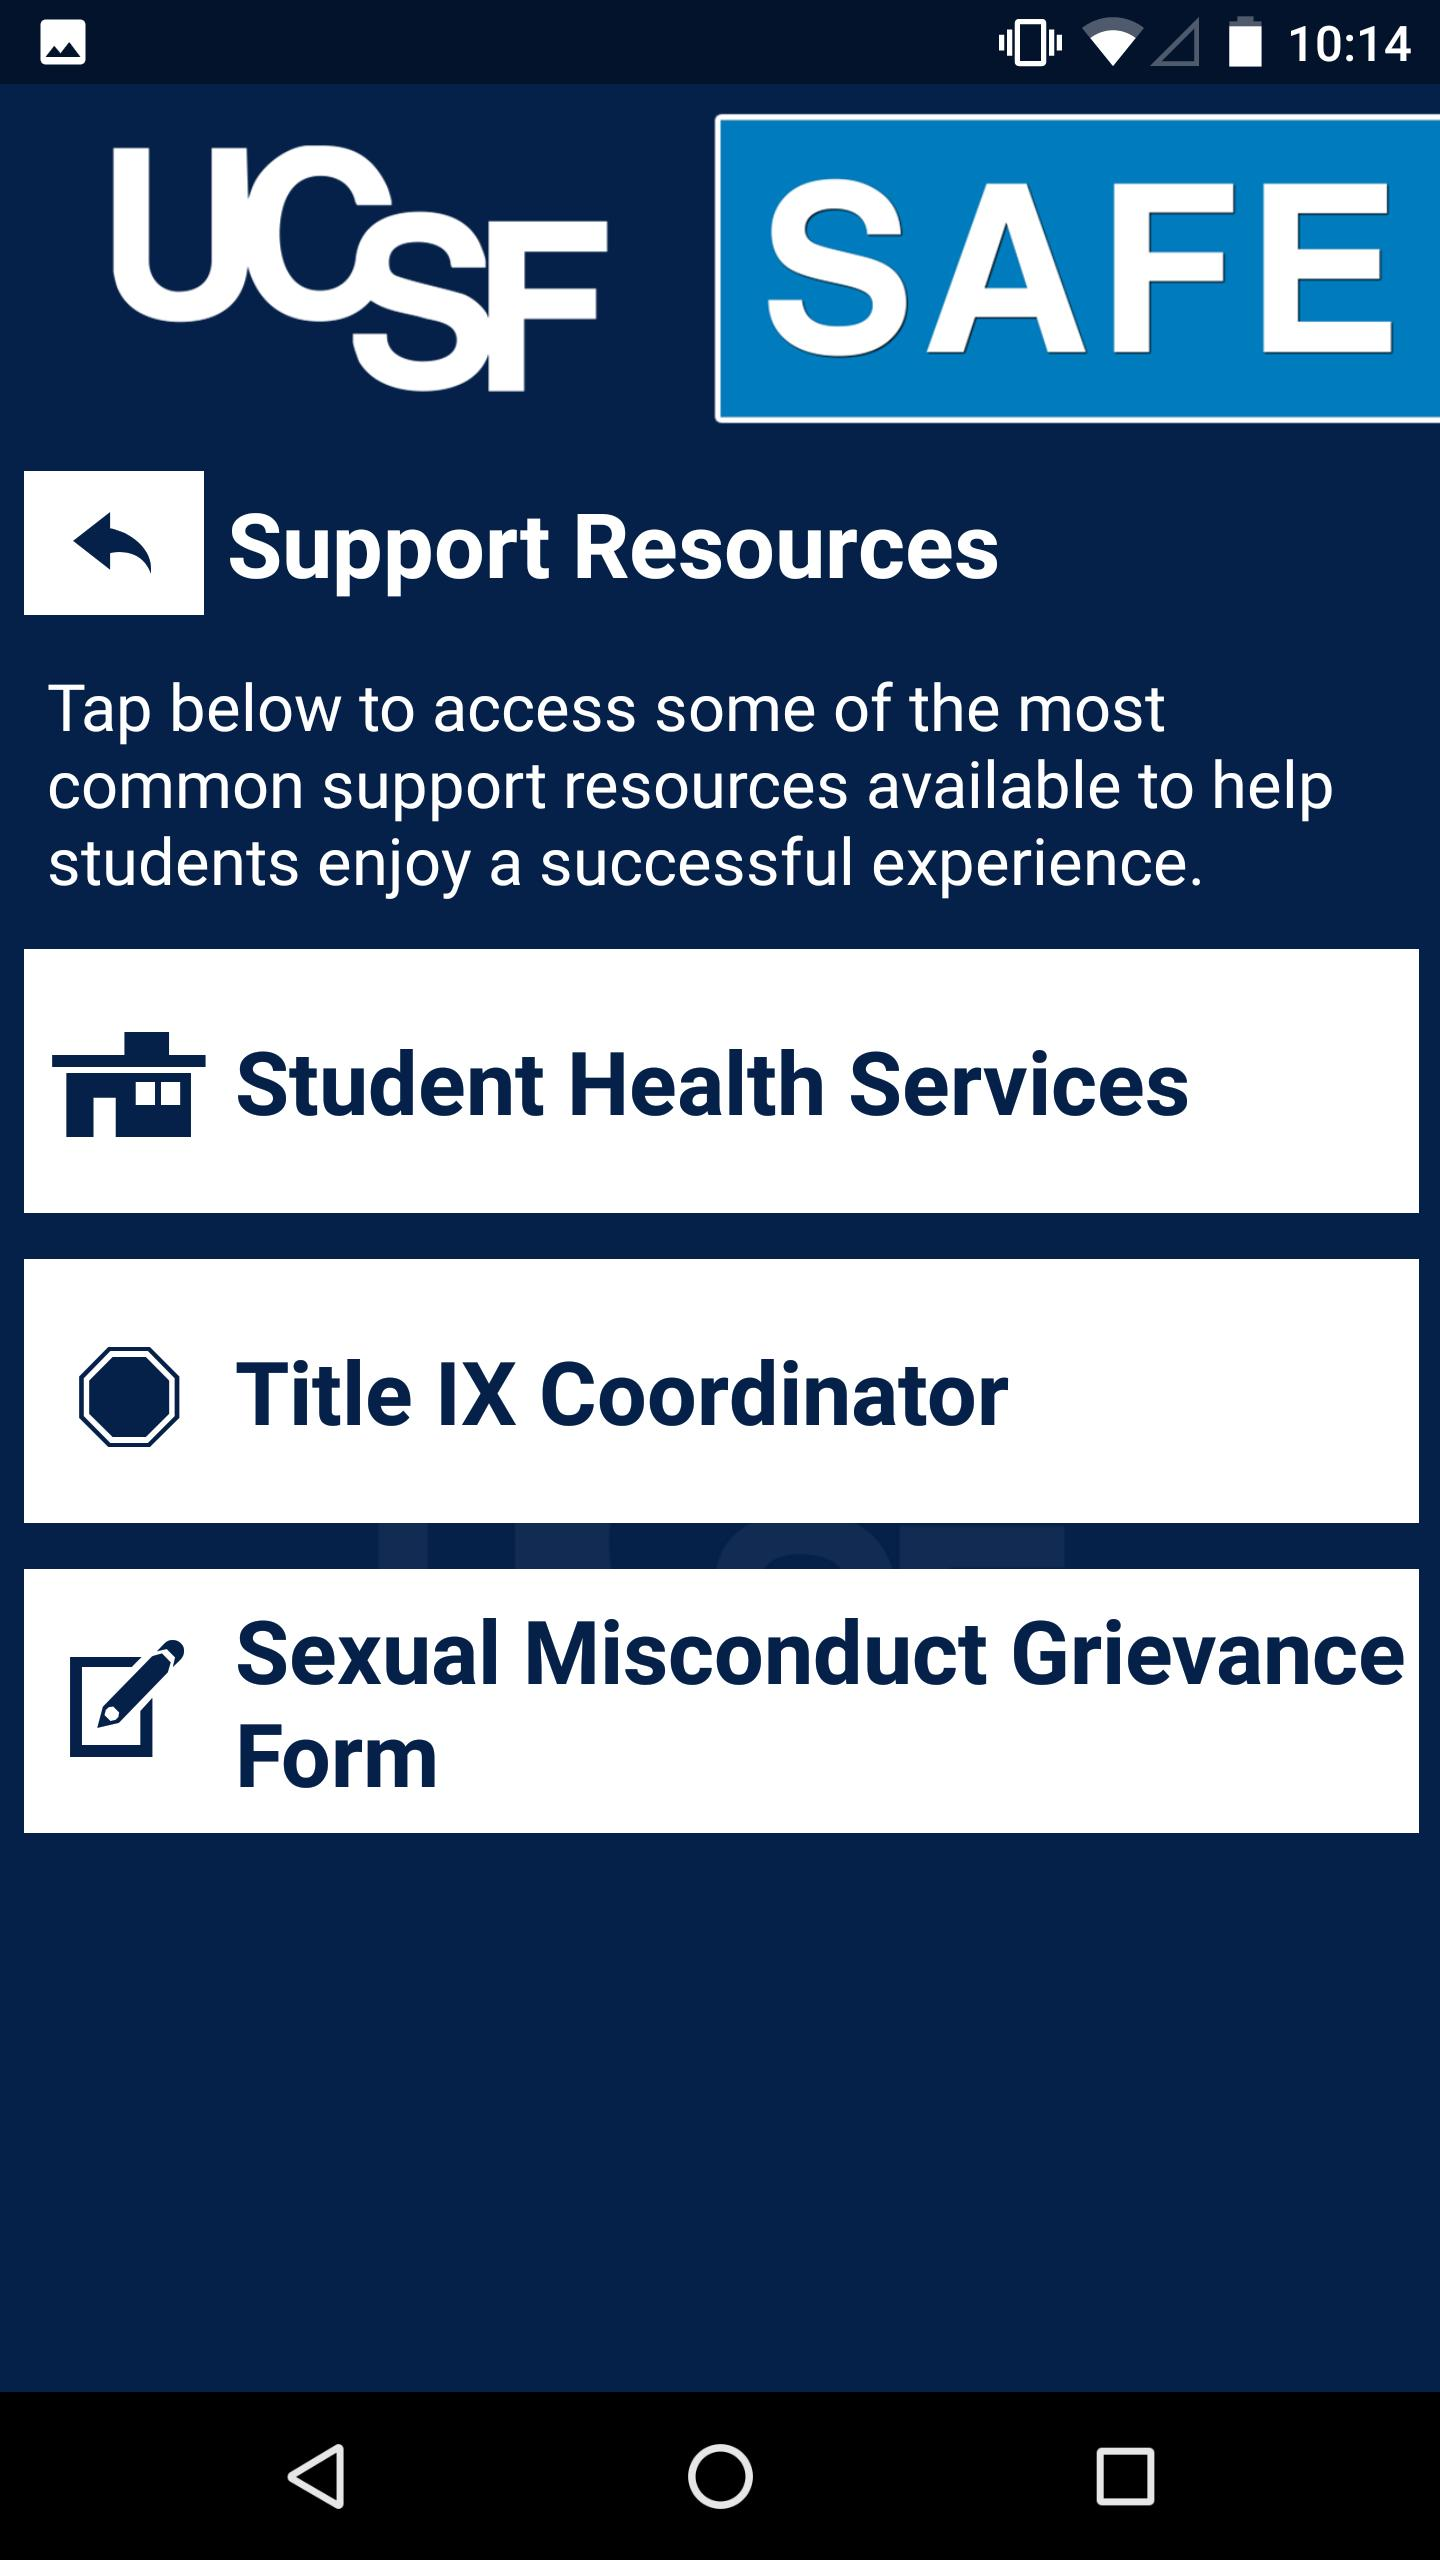 UCSF Safe for Android - APK Download